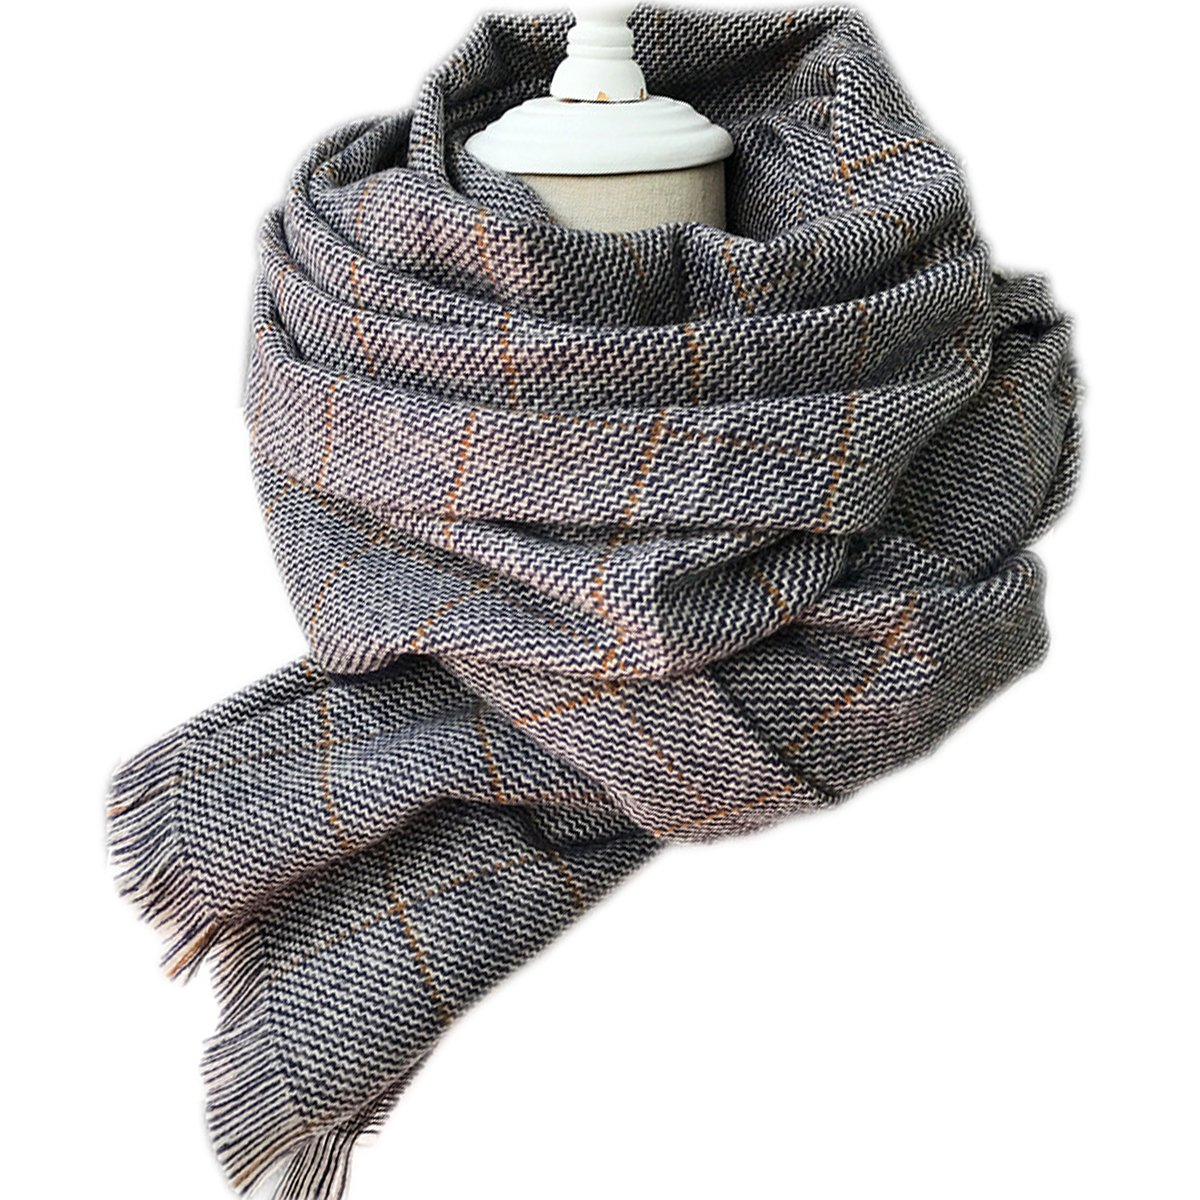 MeliMe Women Men Plaid Blanket Scarf Winter Wool Tartan Fringe Scarves Oversize Thick Wraps Shawl (Style 04)